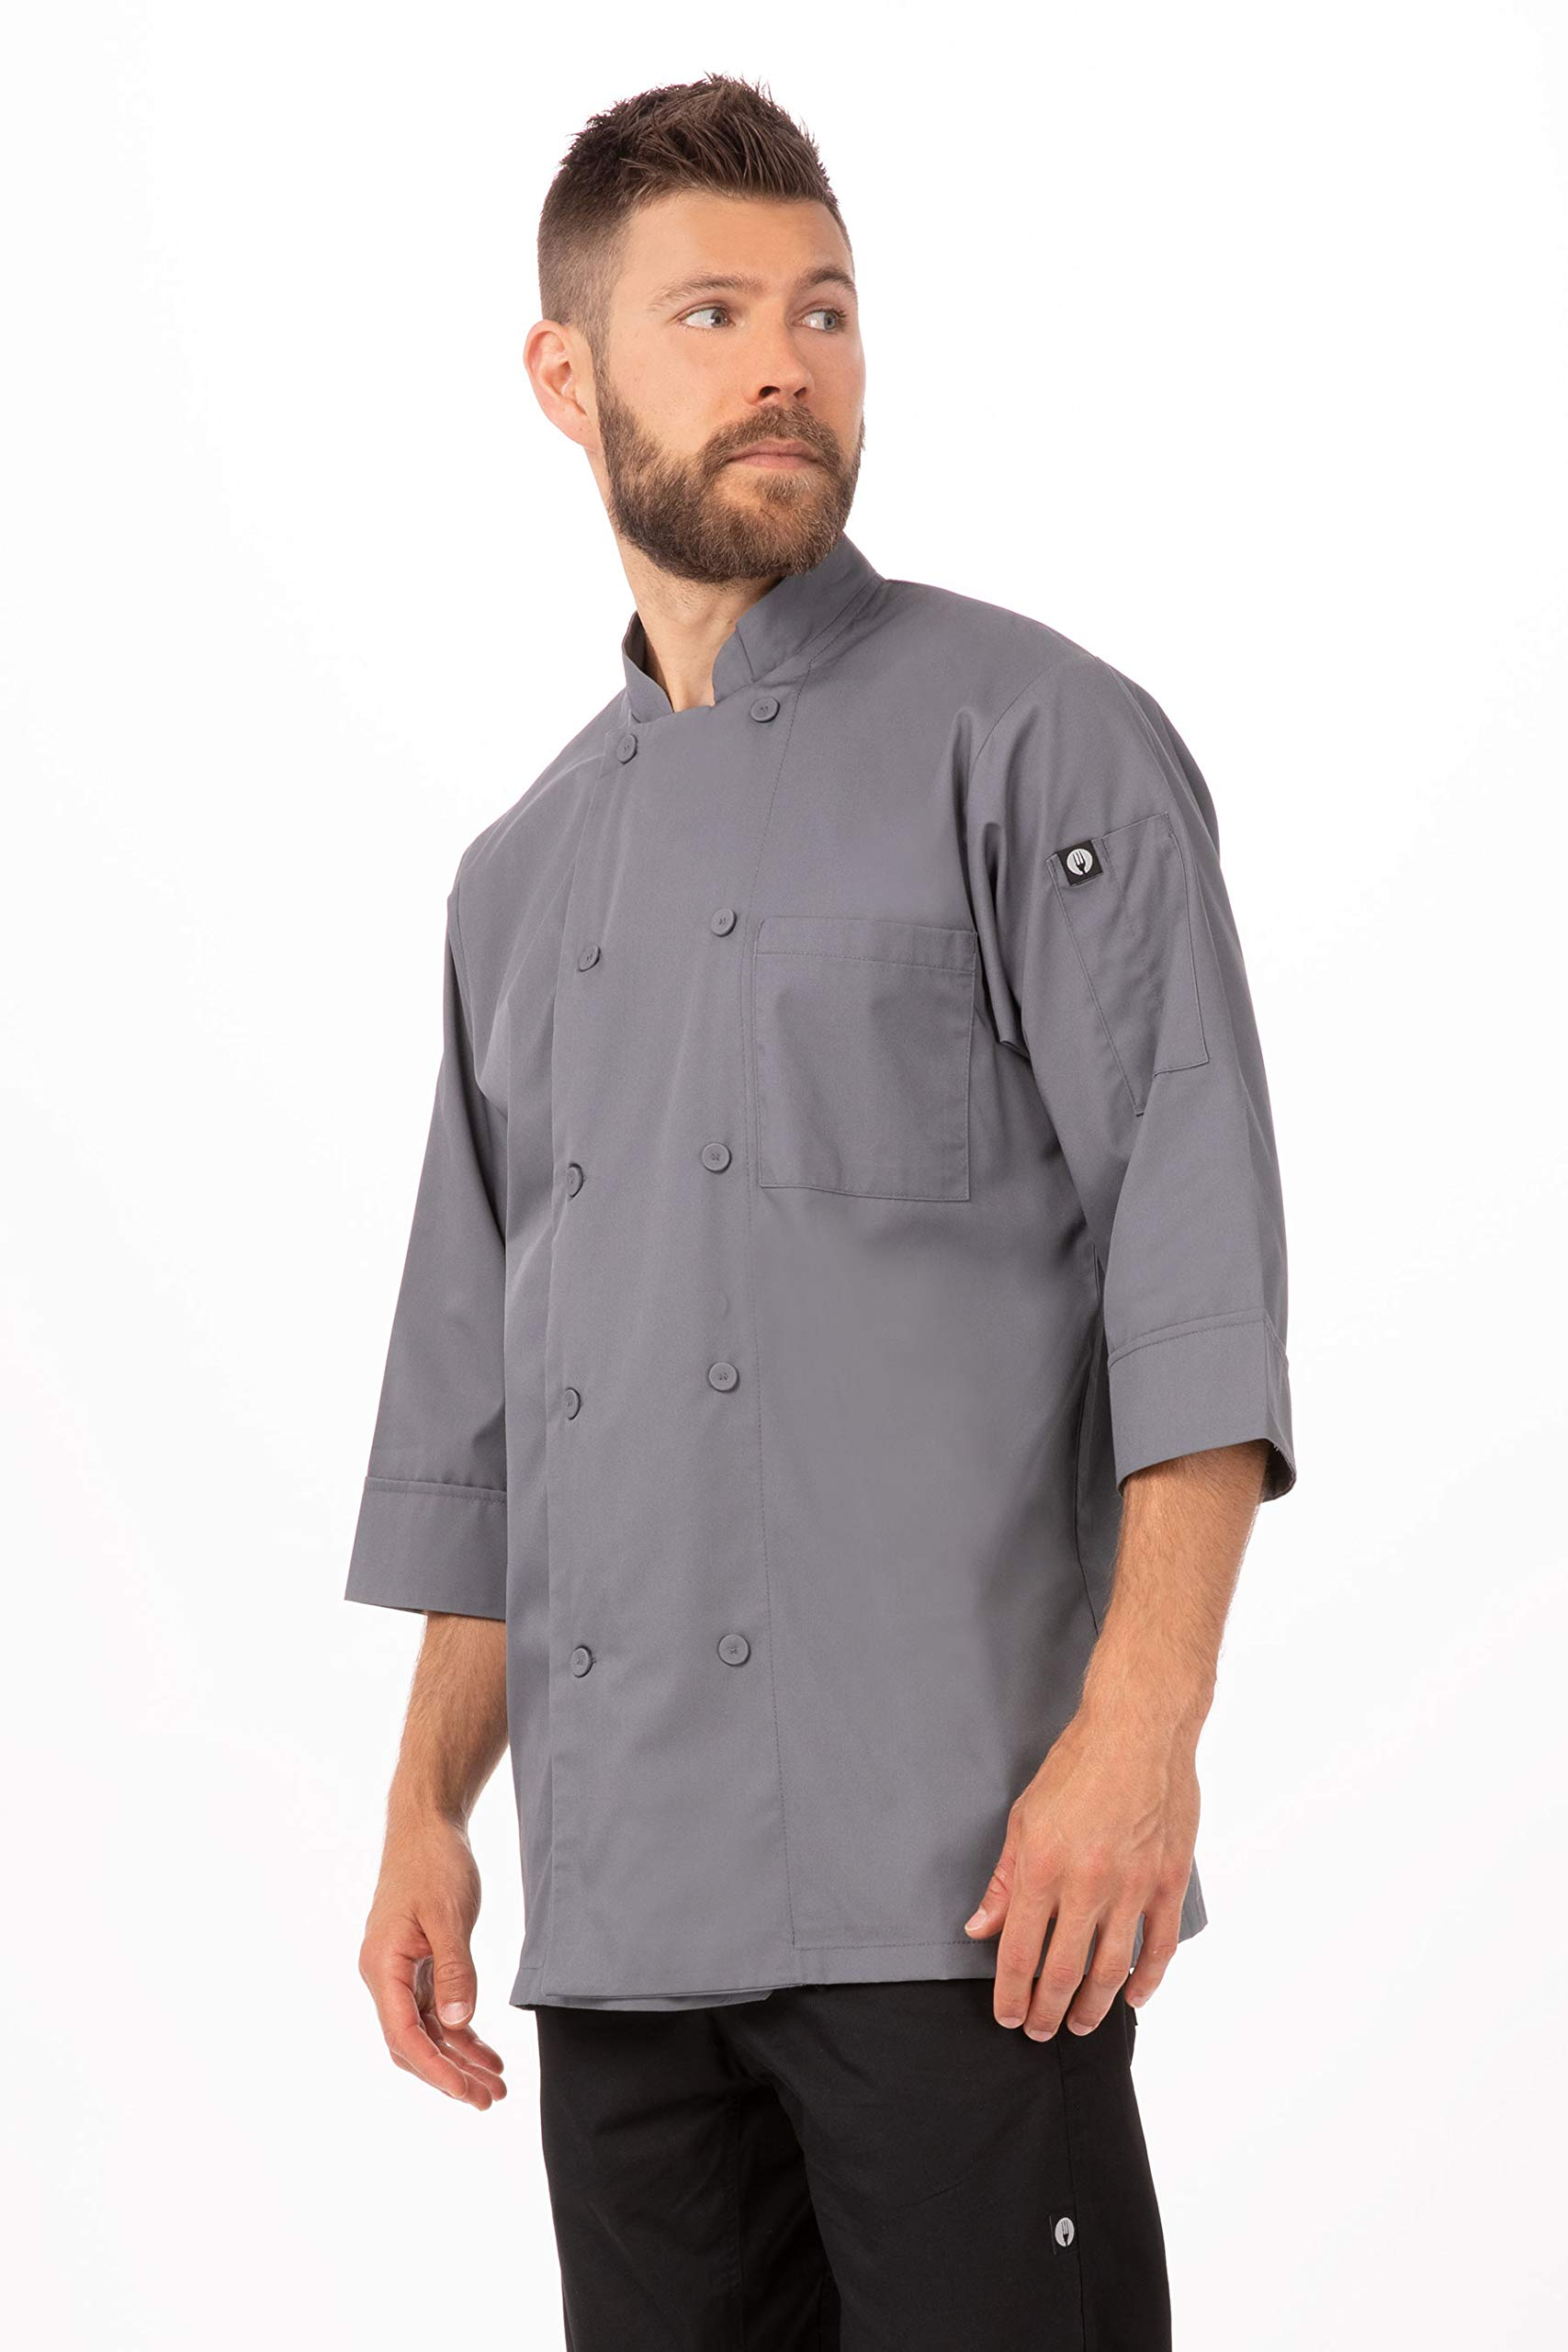 Chef Works Men's Morocco Chef Coat, Gray, 6XL by Chef Works